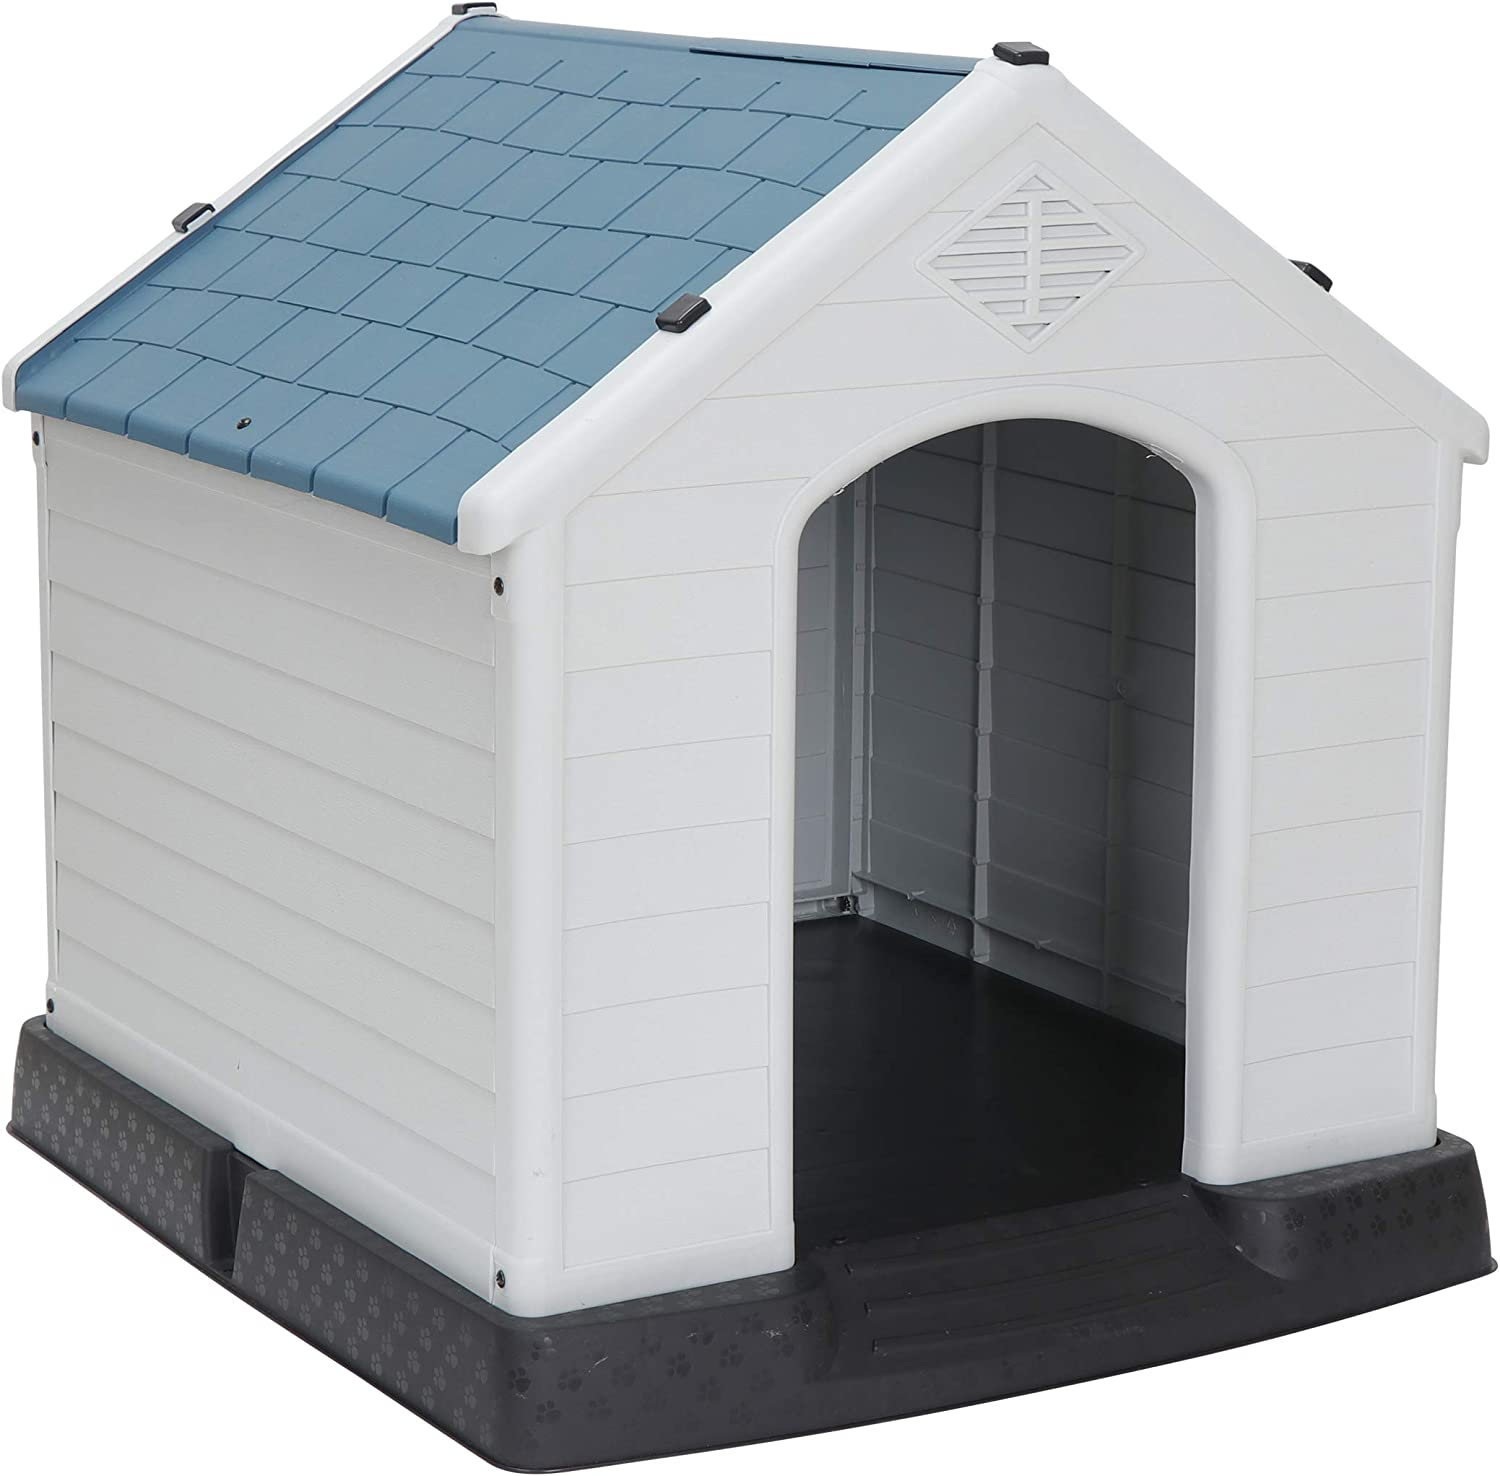 Amazon Com Zeny Plastic Dog House Water Resistant Dog Kennel For Small To Medium Sized Dogs All Weather Indoor Outdoor Doghouse Puppy Shelter Pet Supplies